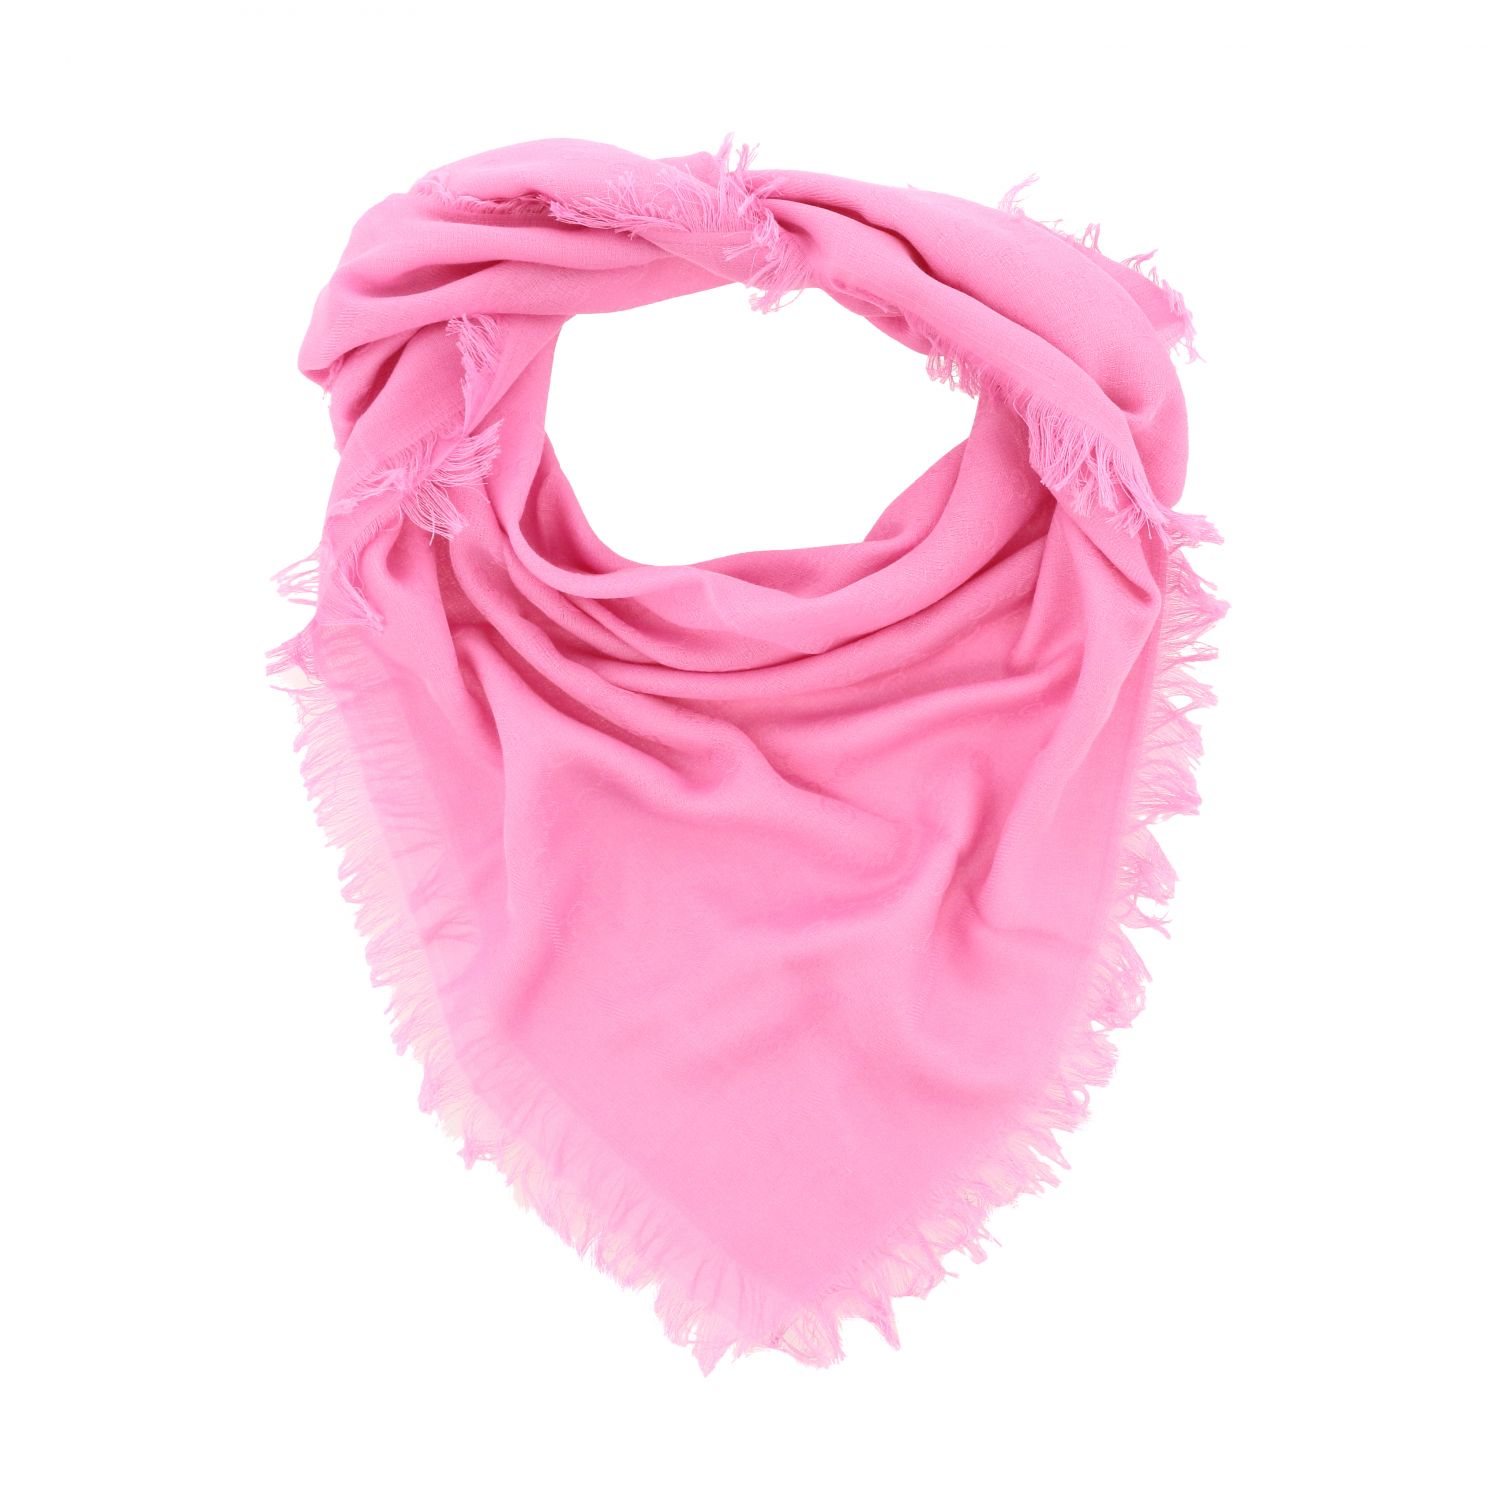 Foulard Gucci: Kefia Gucci basic rose 2